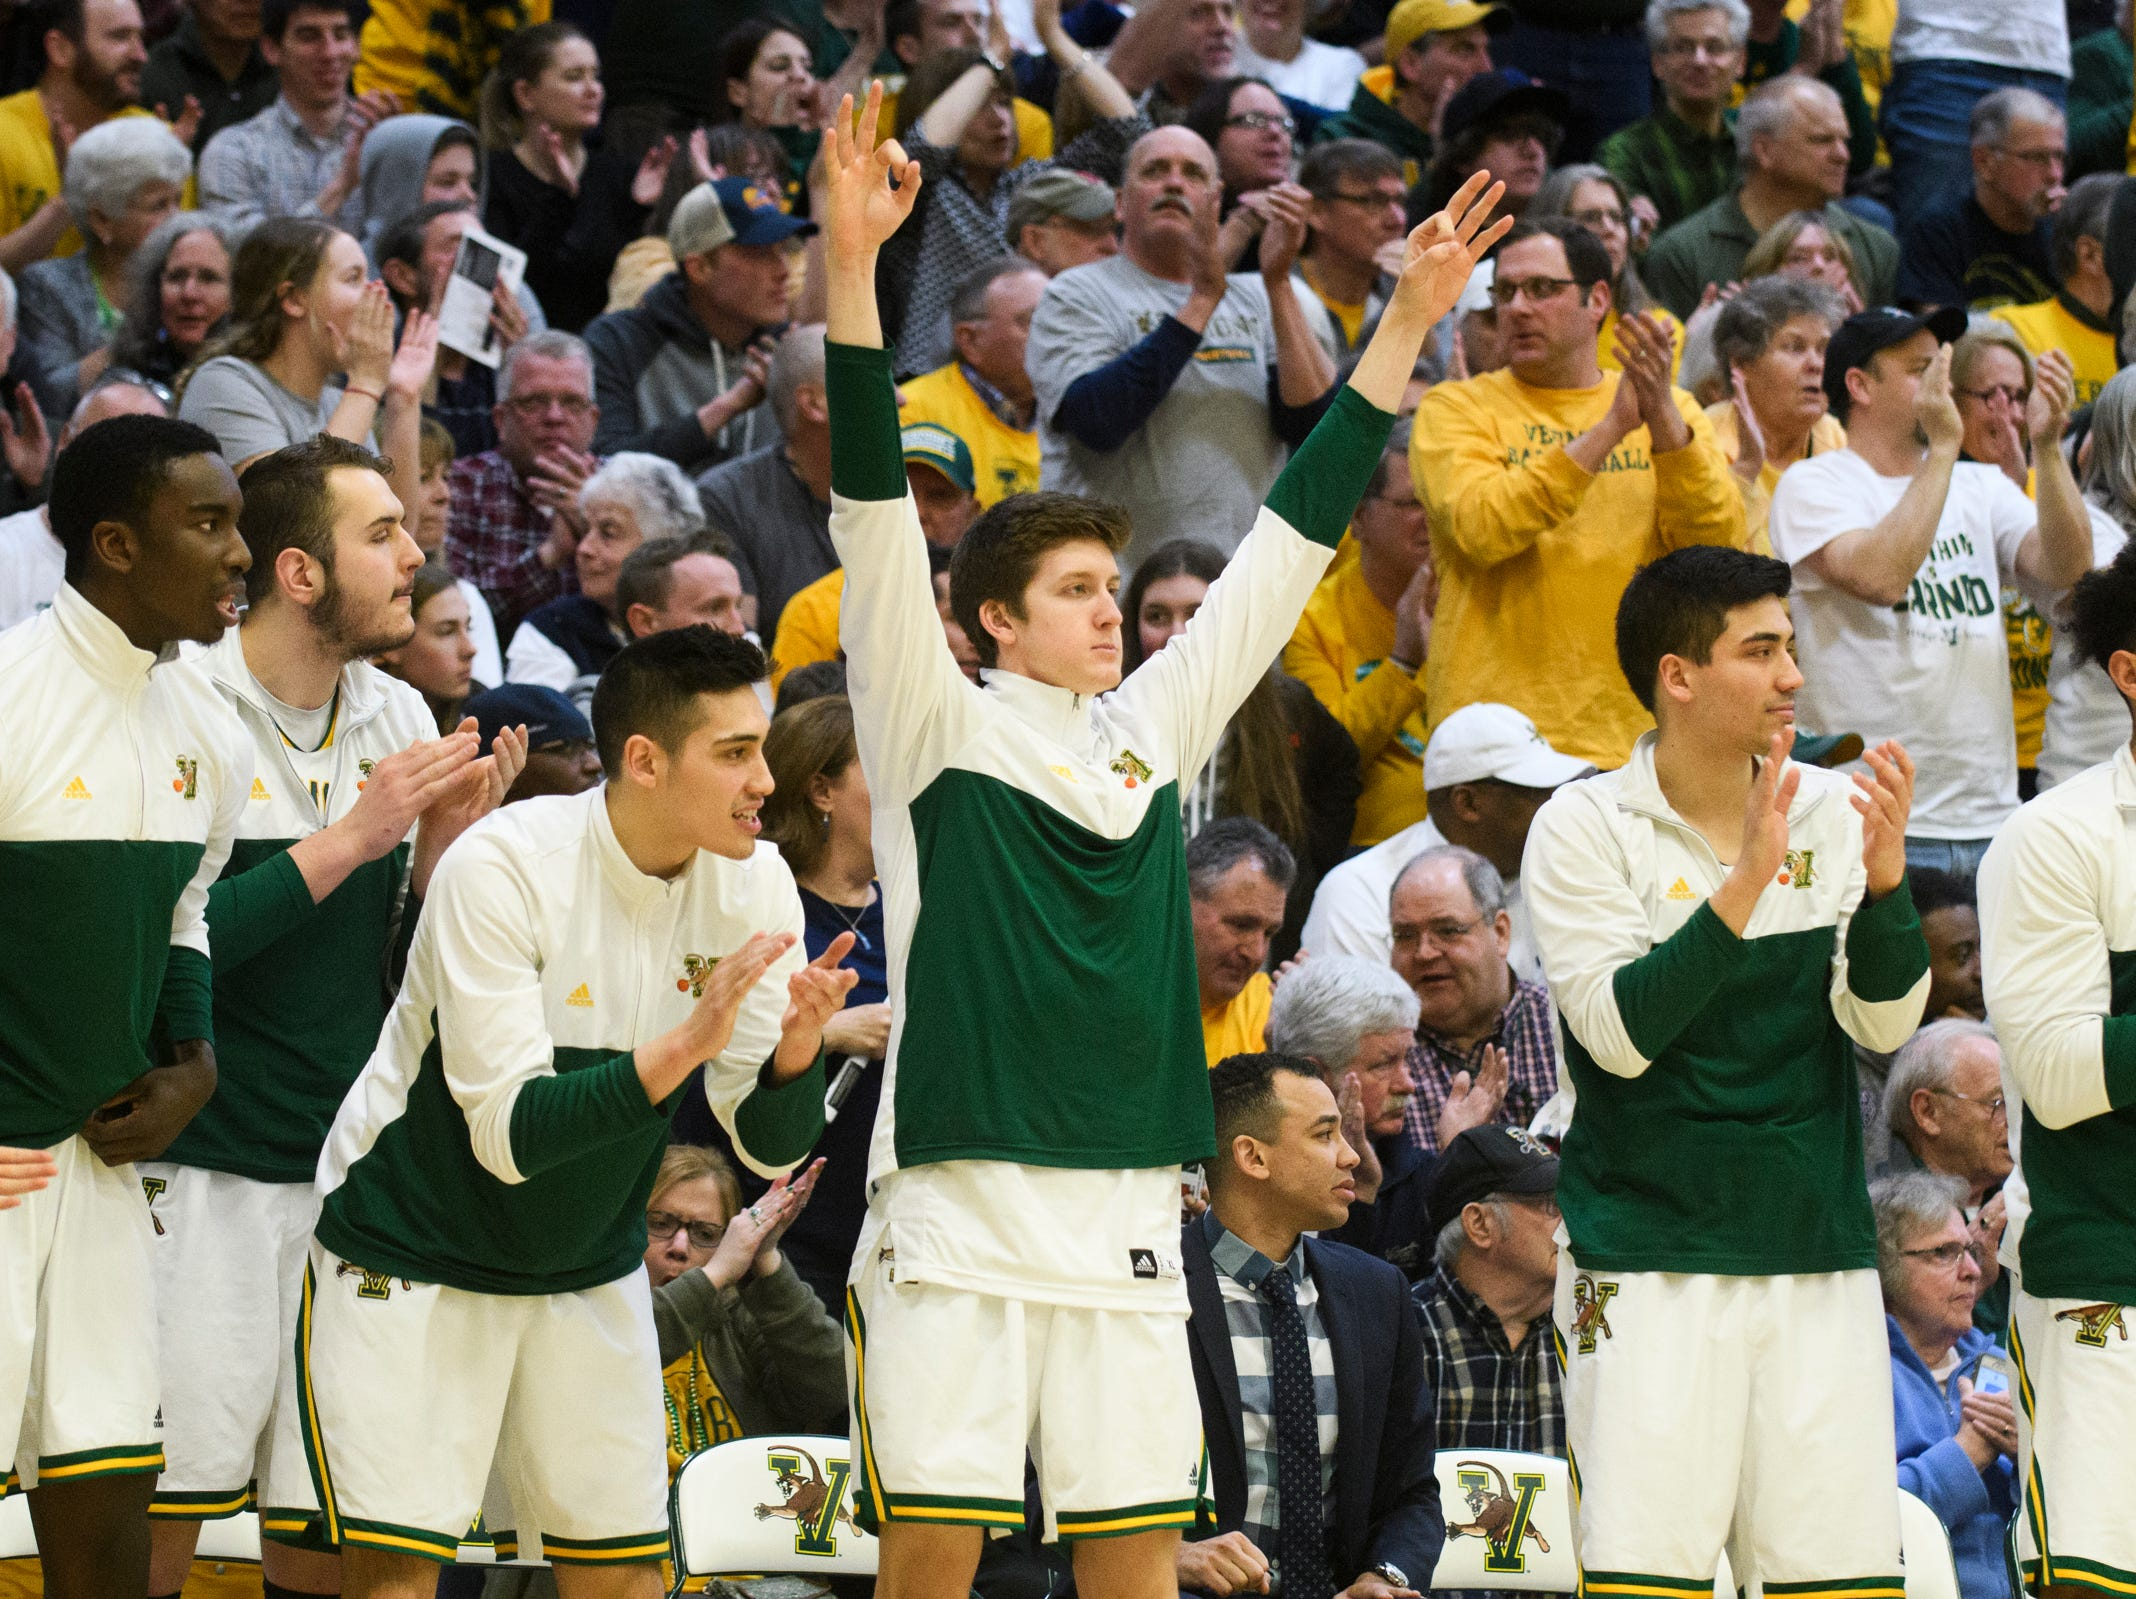 The Vermont bench celebrates a three pointer during the America East semifinal game between the Binghamton Bearcats and the Vermont Catamounts at Patrick Gym on Tuesday March 12, 2019 in Burlington, Vermont.